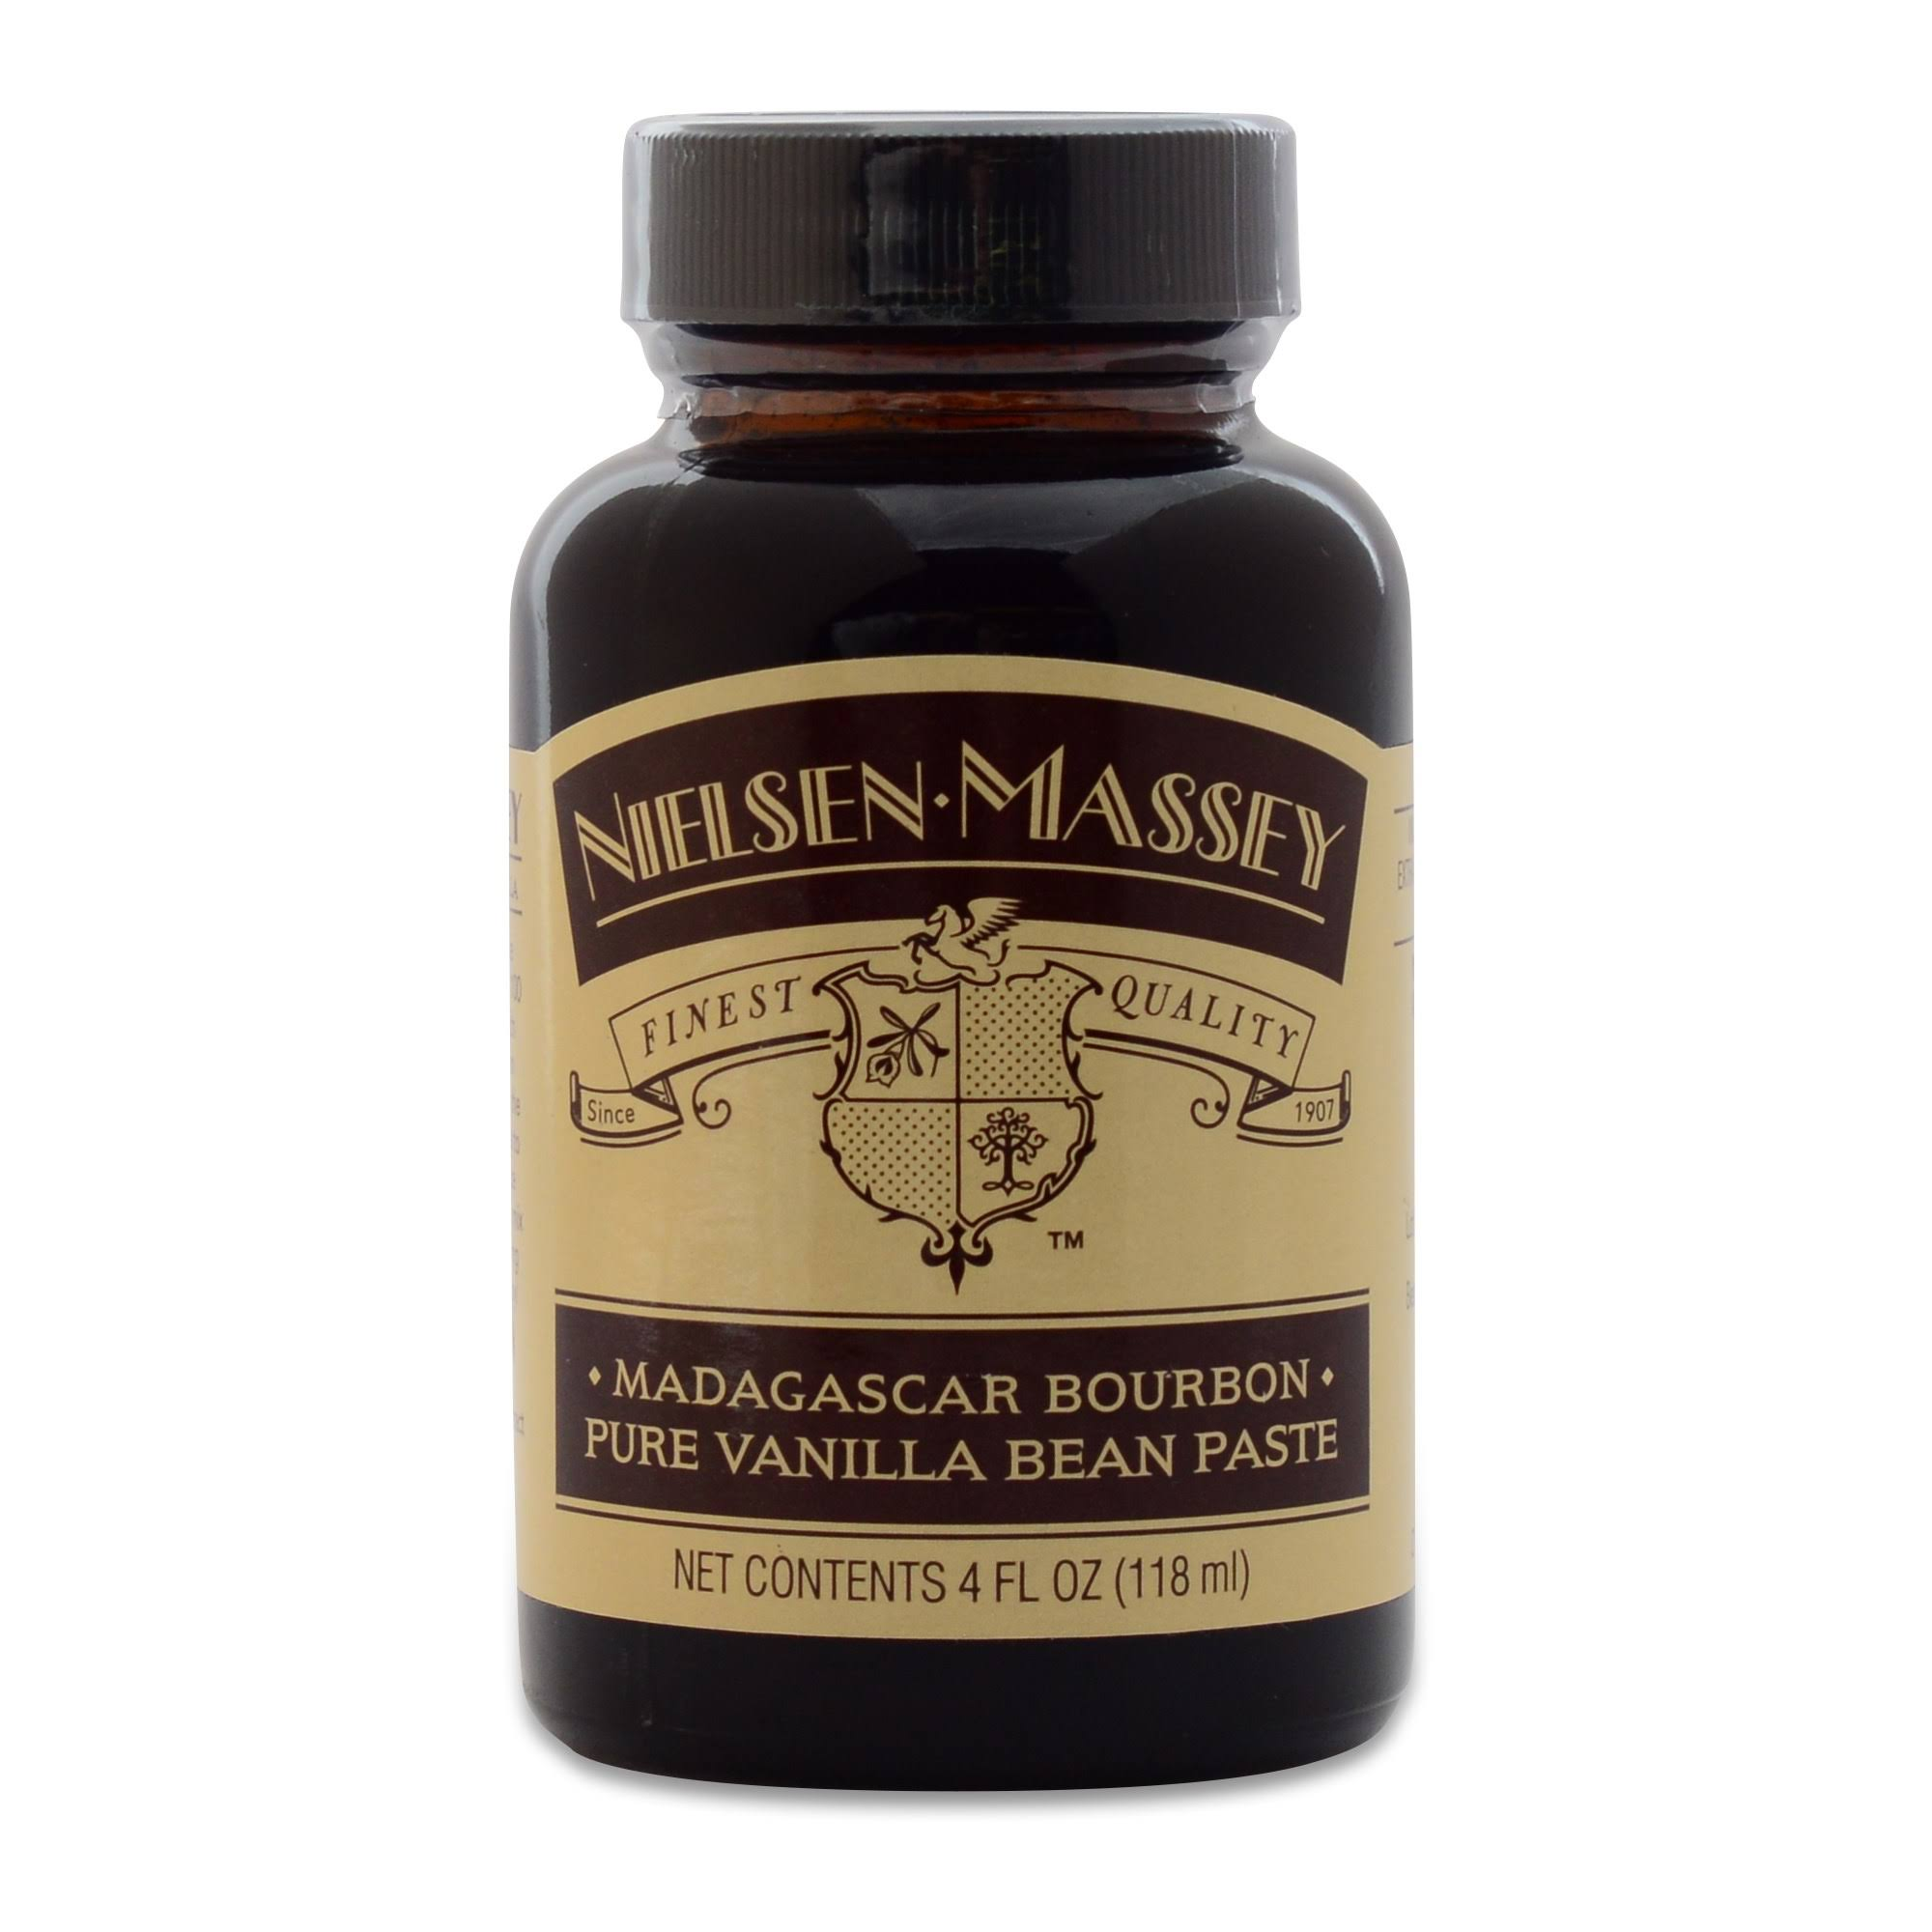 Nielsen Massey Vanilla Bean Paste, Pure, Madagascar Bourbon - 4 fl oz